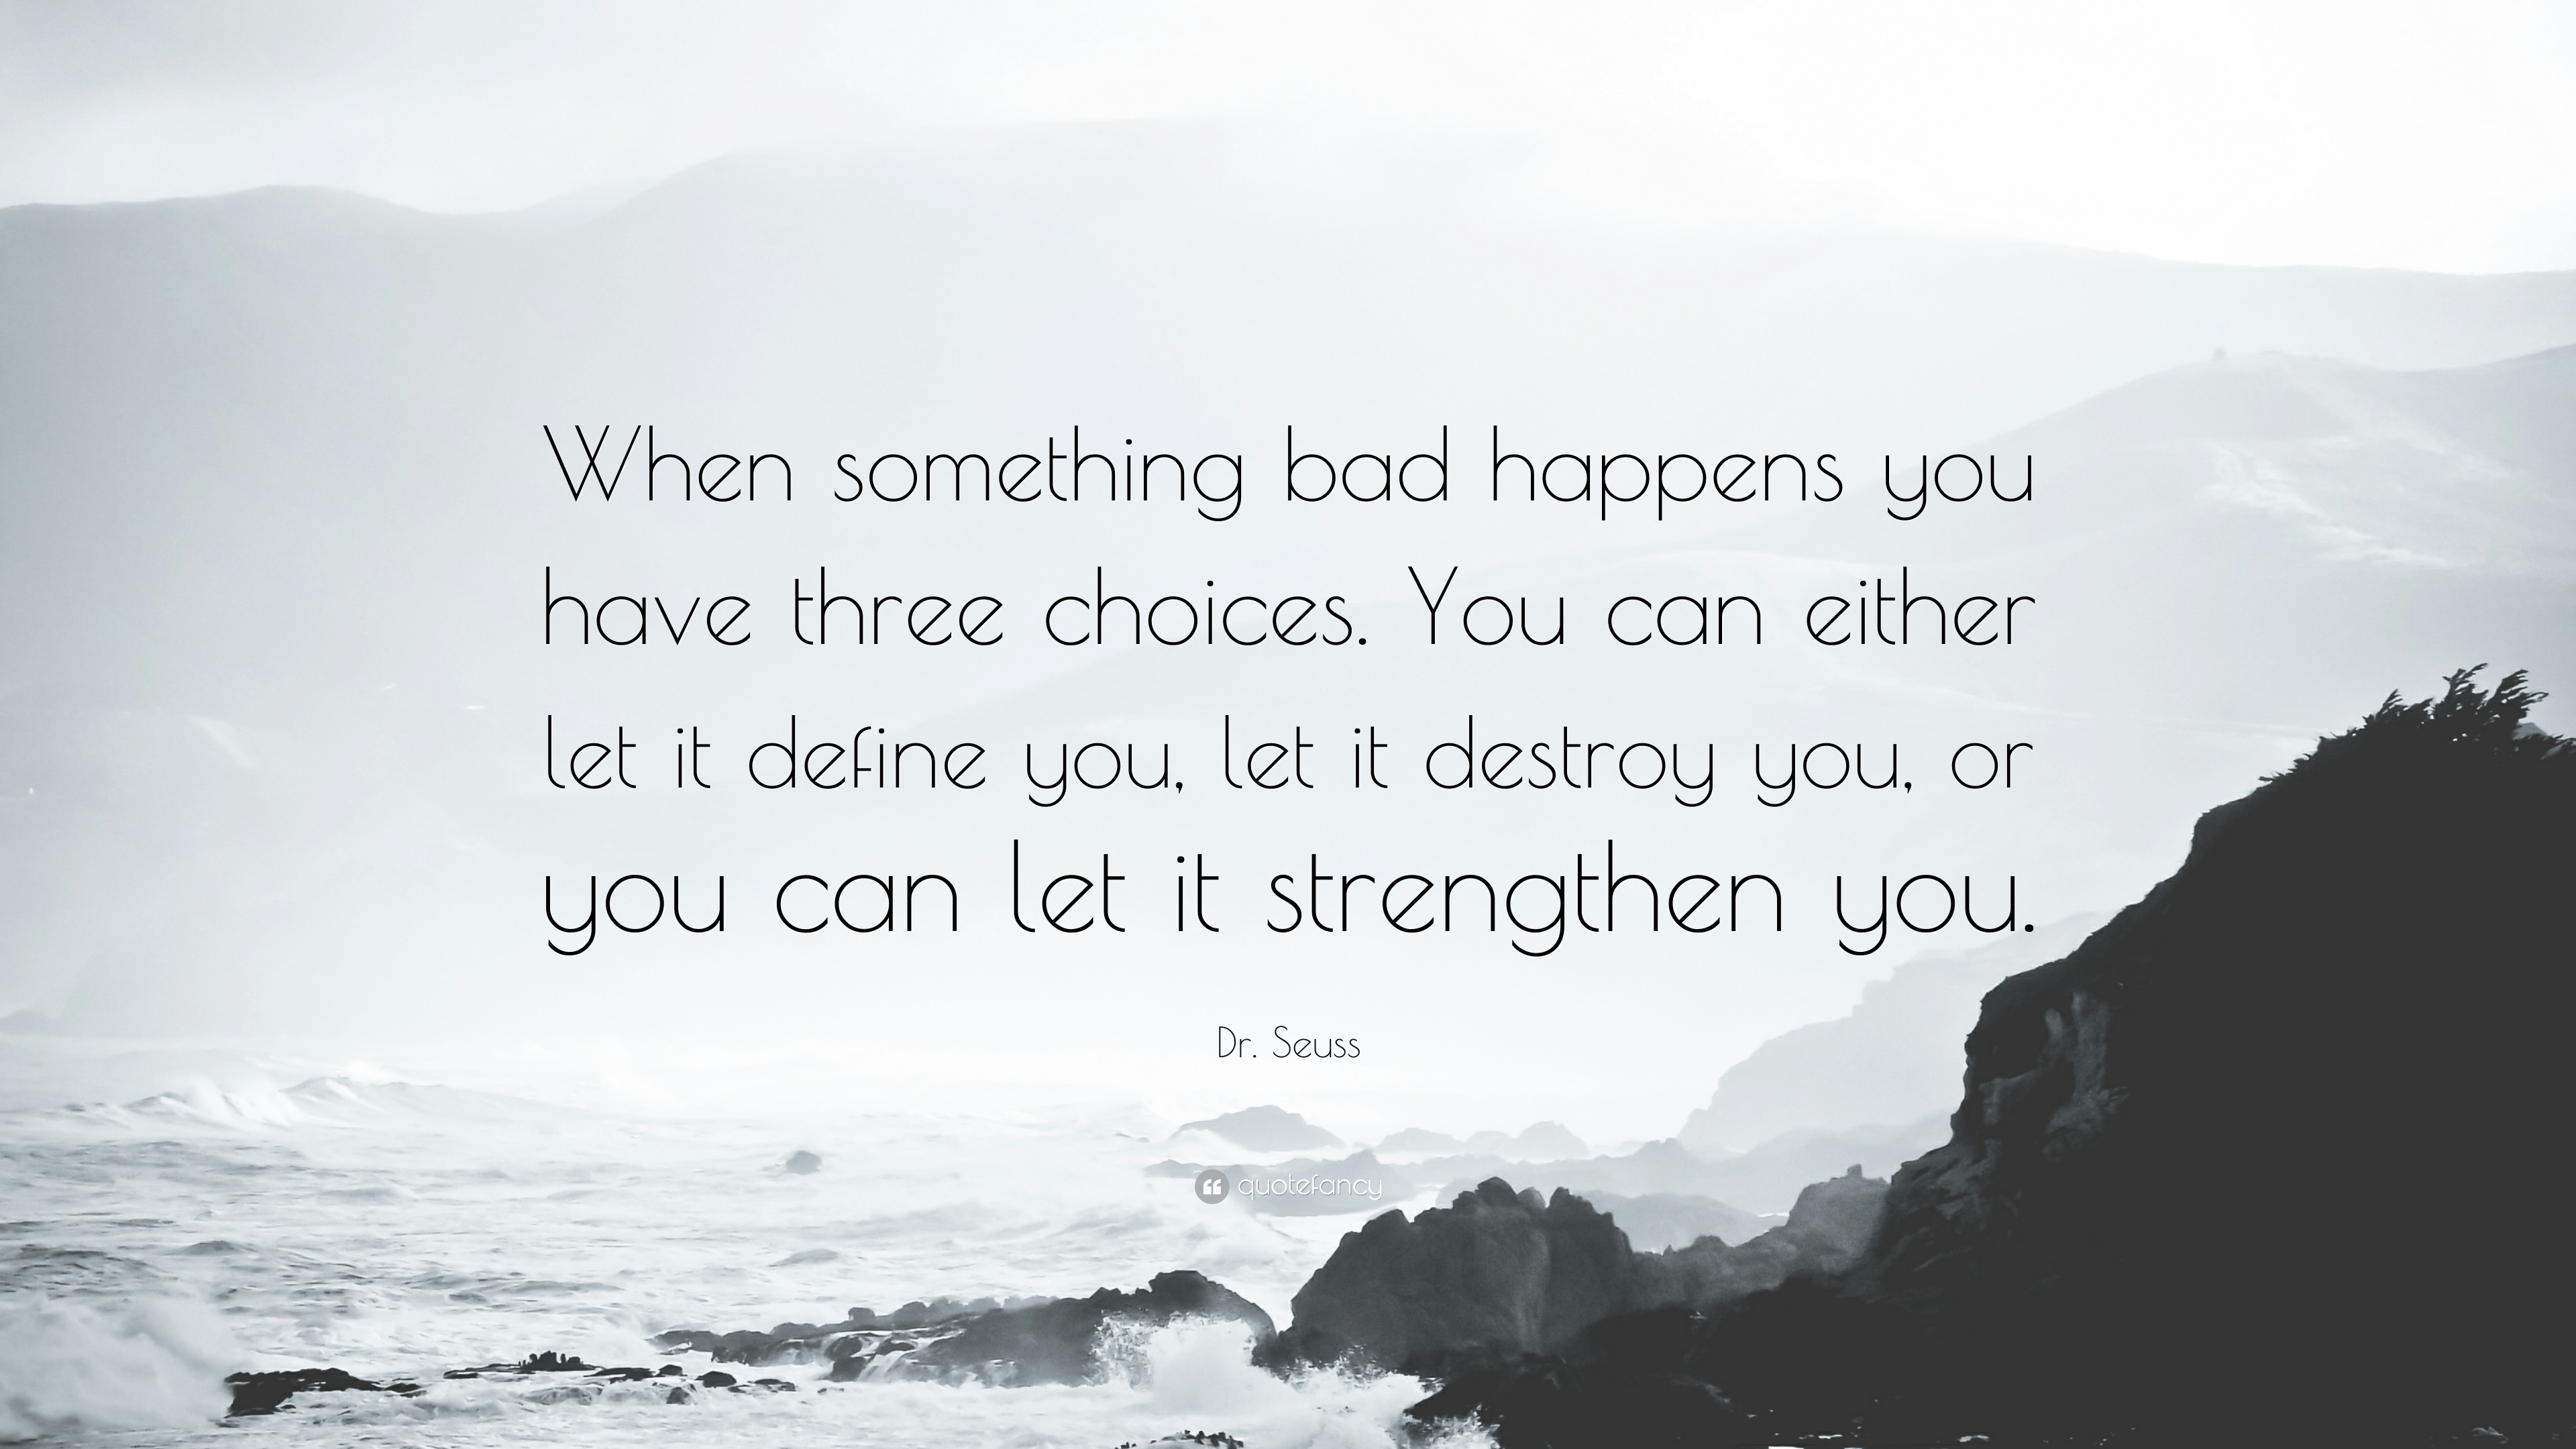 Dr  Seuss Quote     When something bad happens you have three choices     Dr  Seuss Quote     When something bad happens you have three choices  You